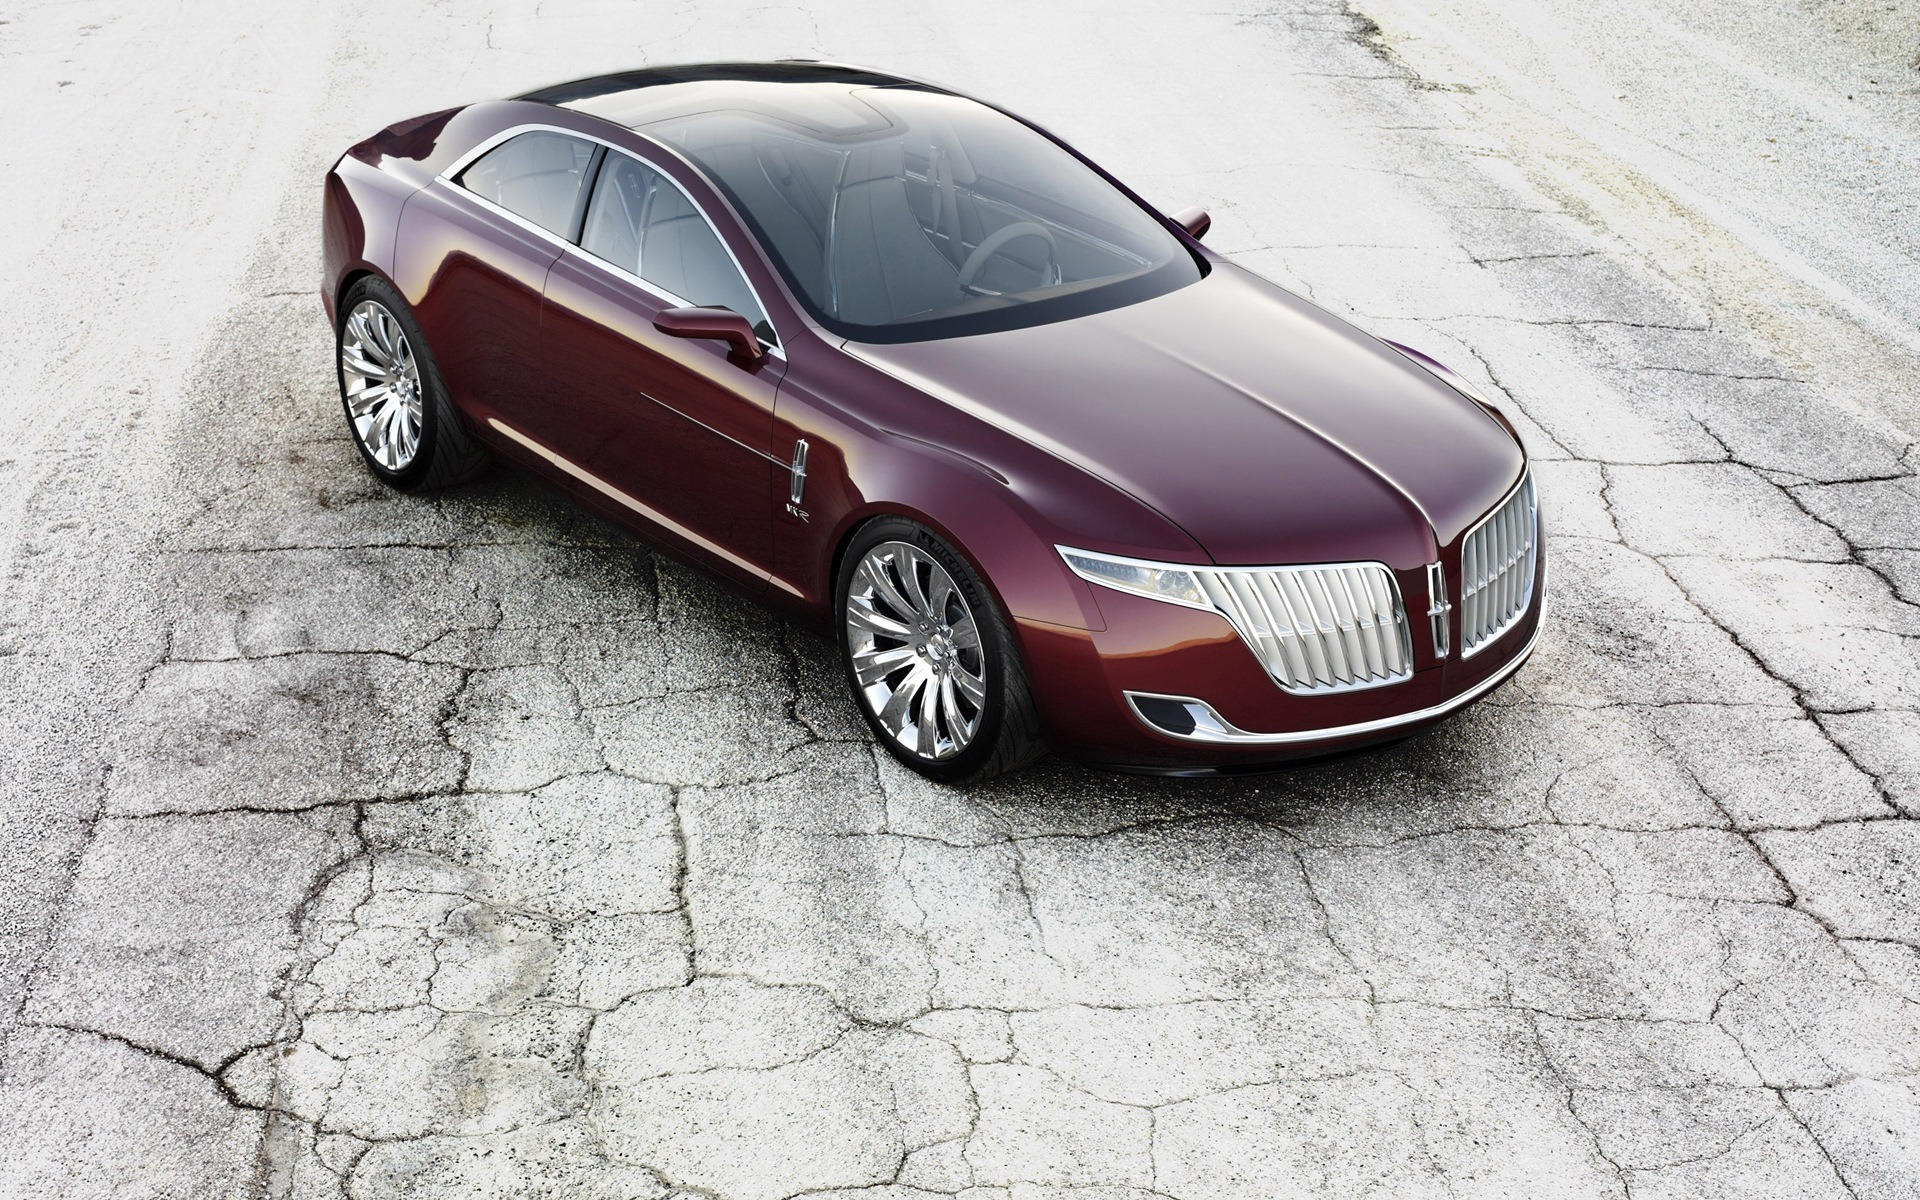 Lincoln Concept Wallpaper Concept Cars Wallpapers In Jpg Format For